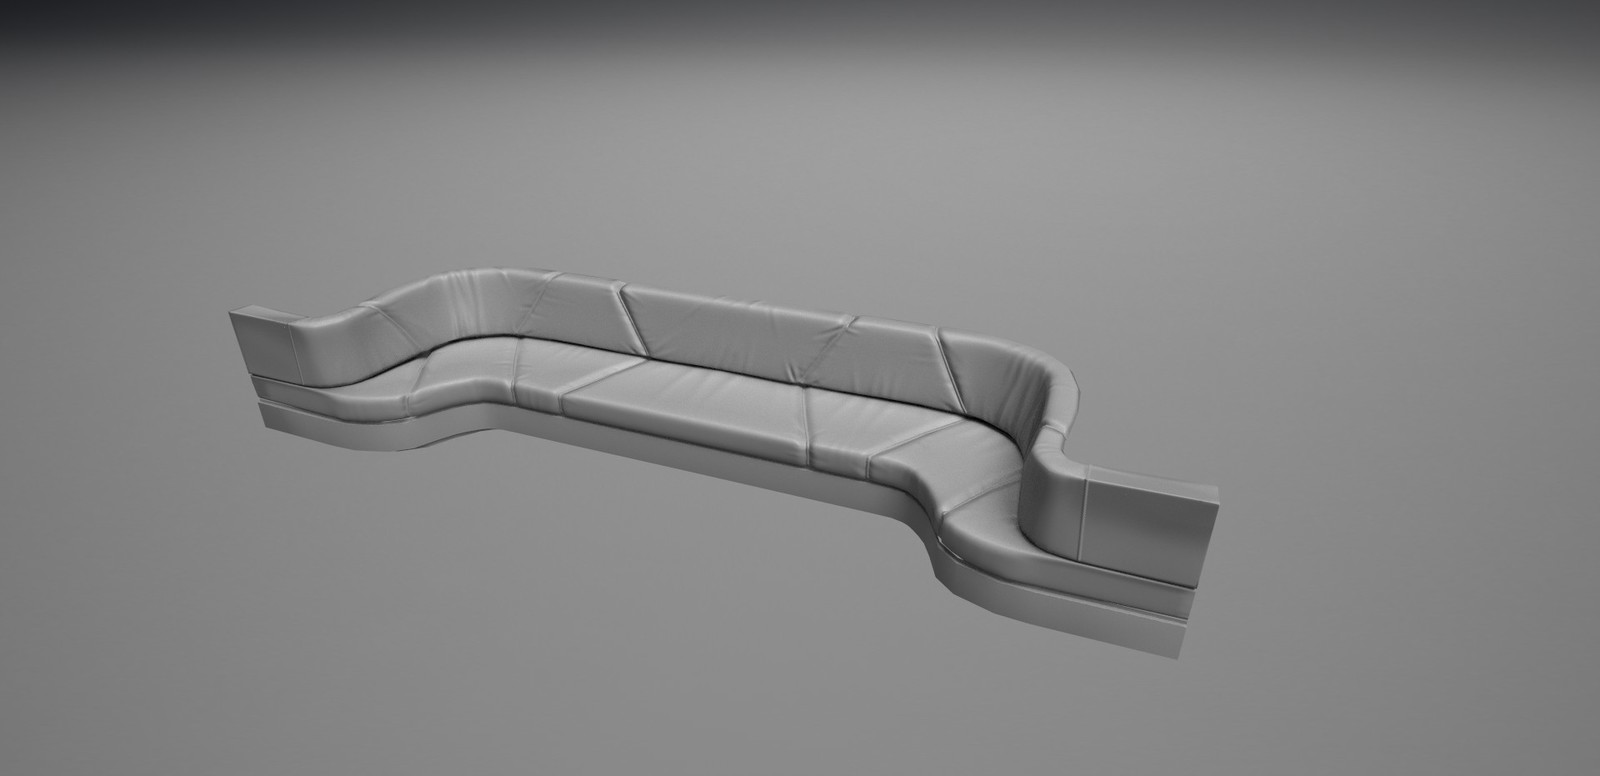 Modeled and textured a Couch for cinematic scene